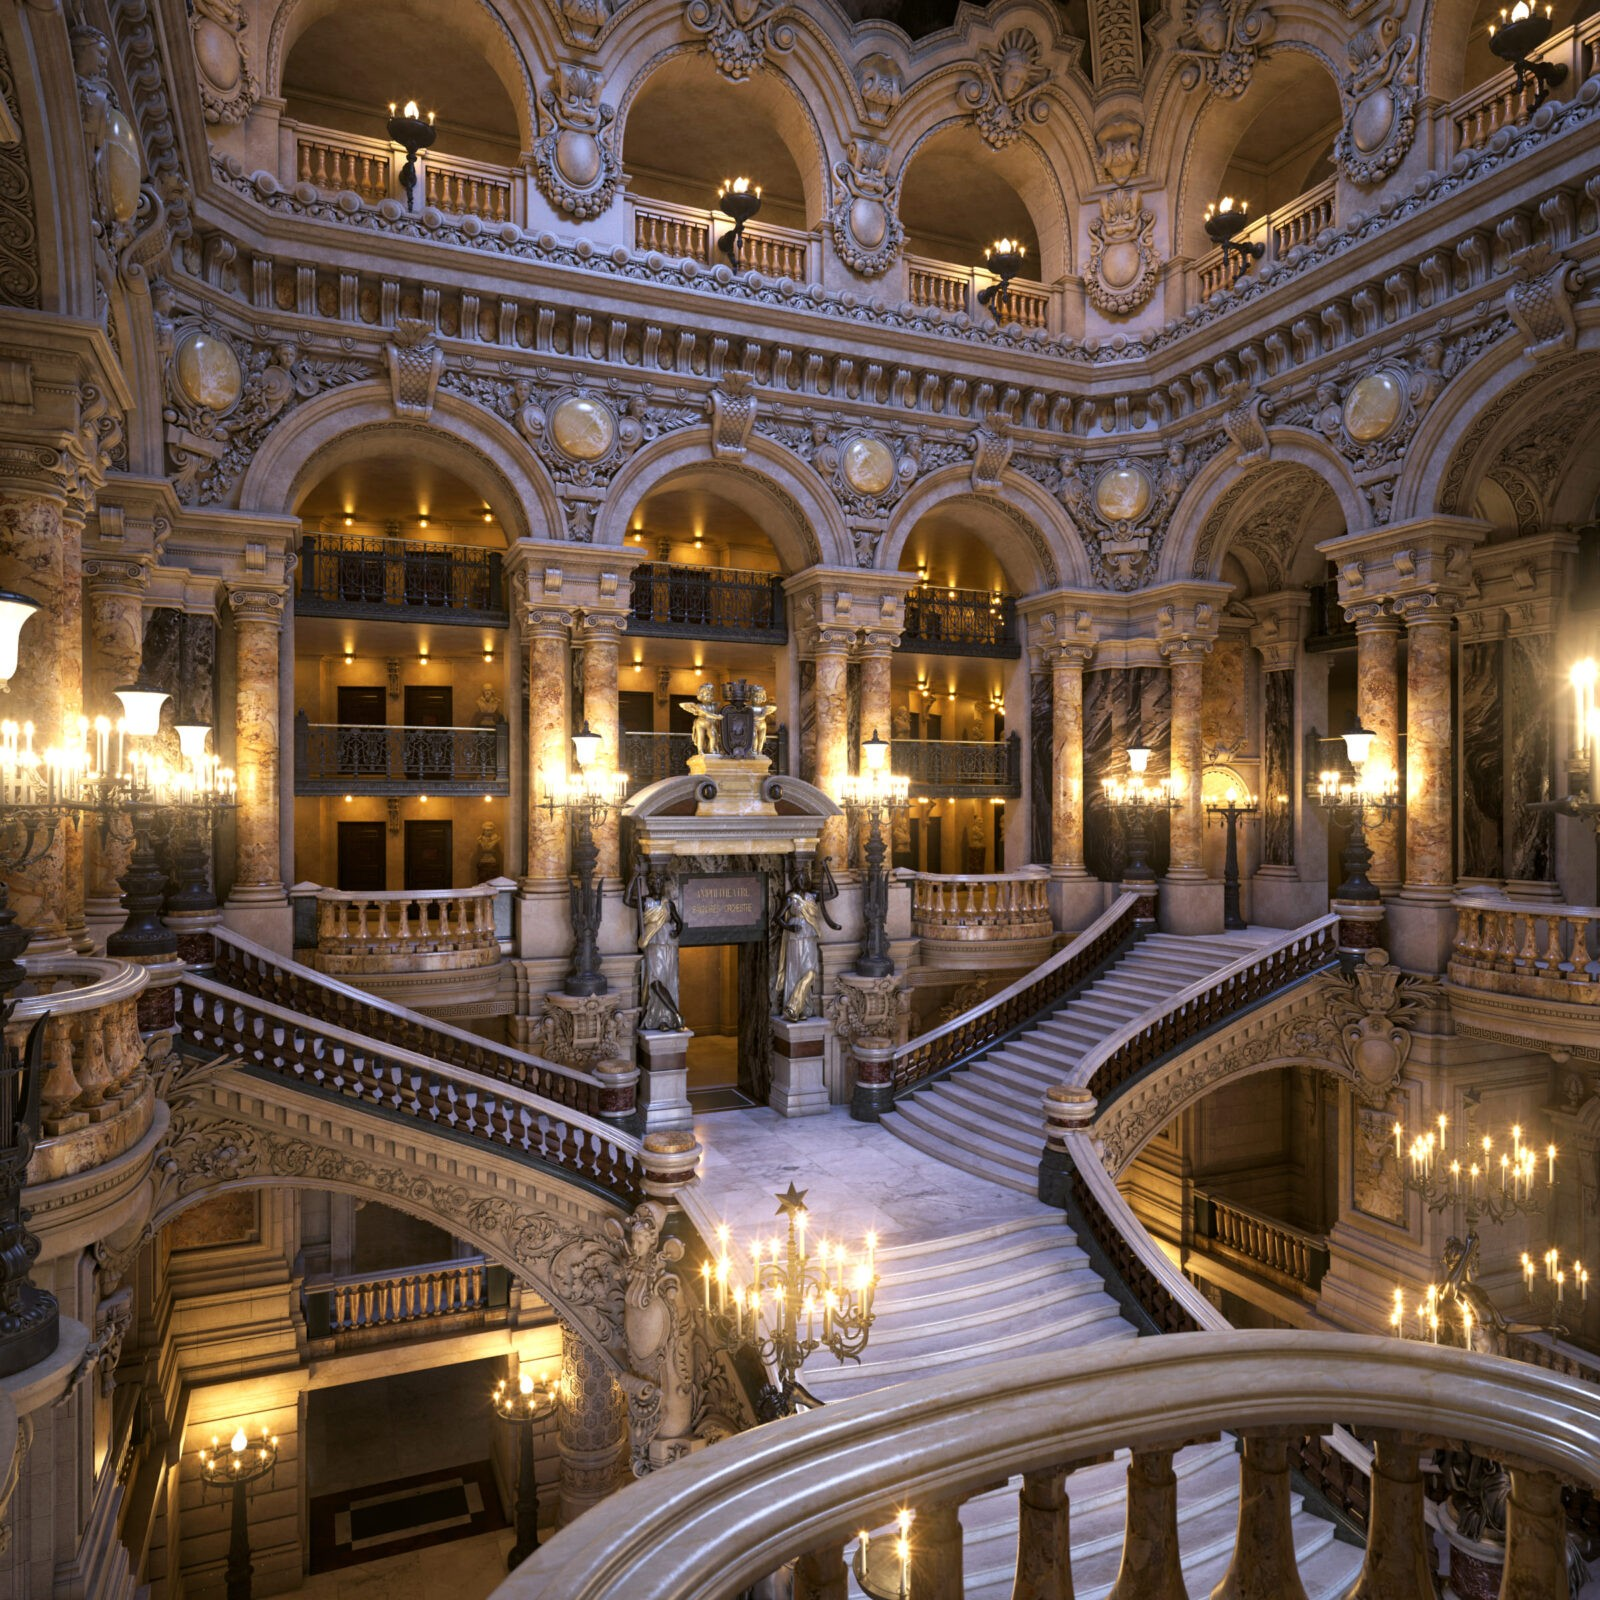 Artists of the Paris Opera Take Their Talents to a Different Platforms